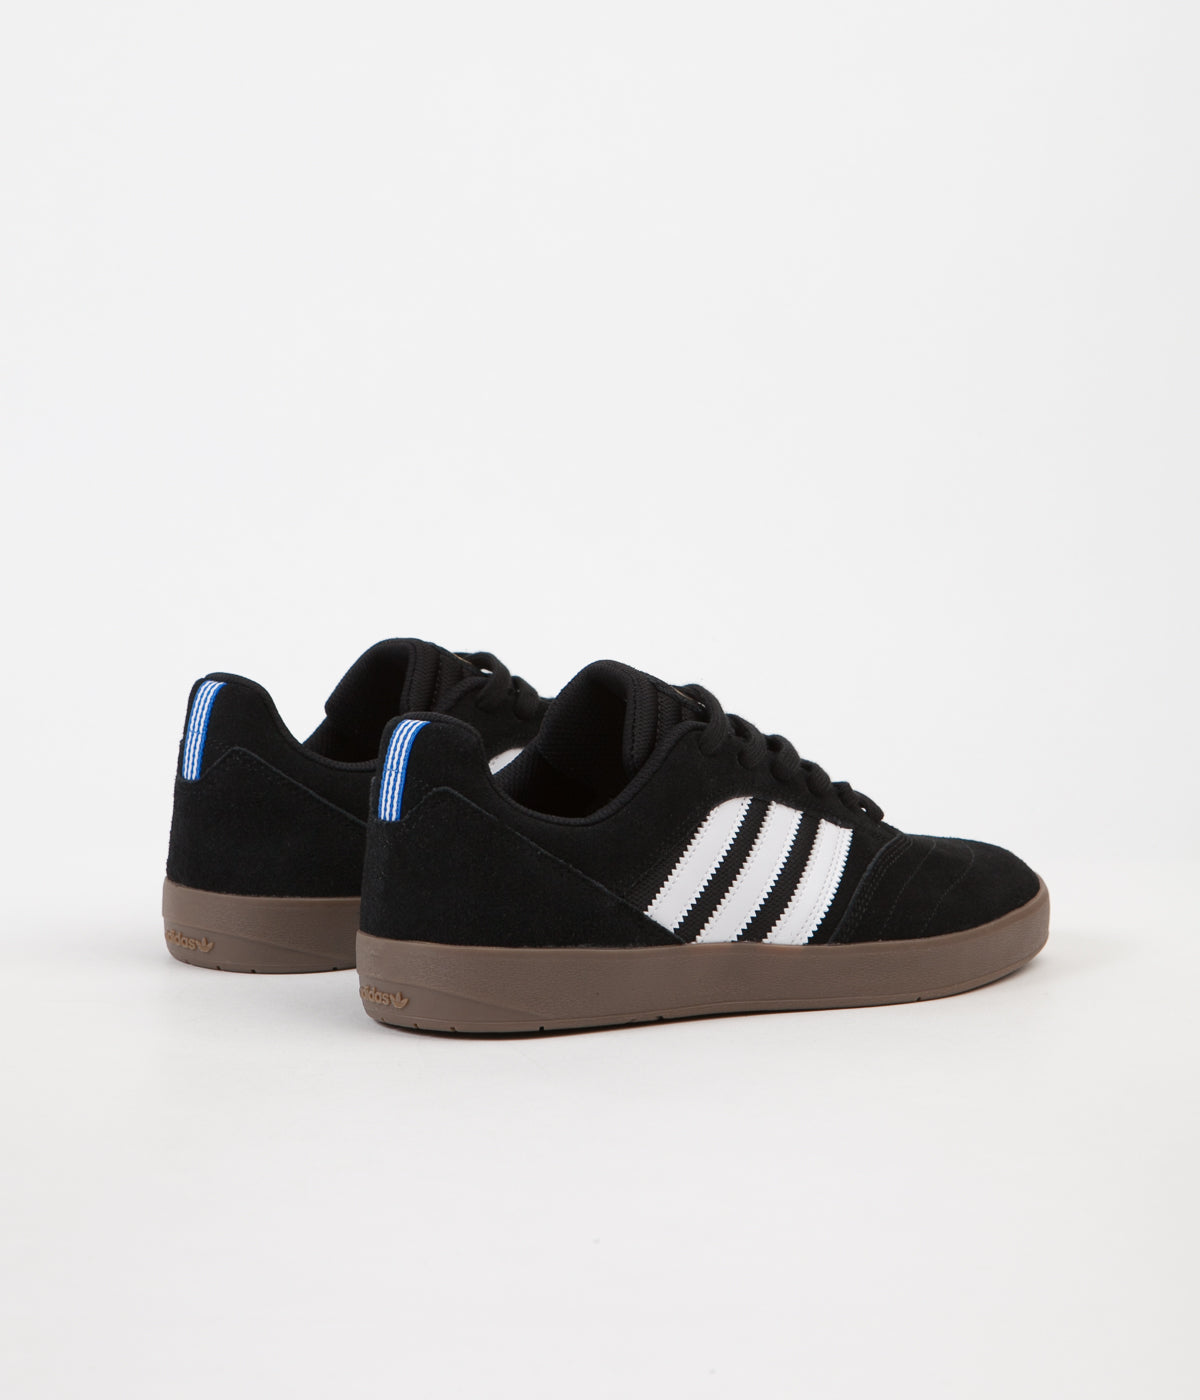 adidas suciu adv ii shoes